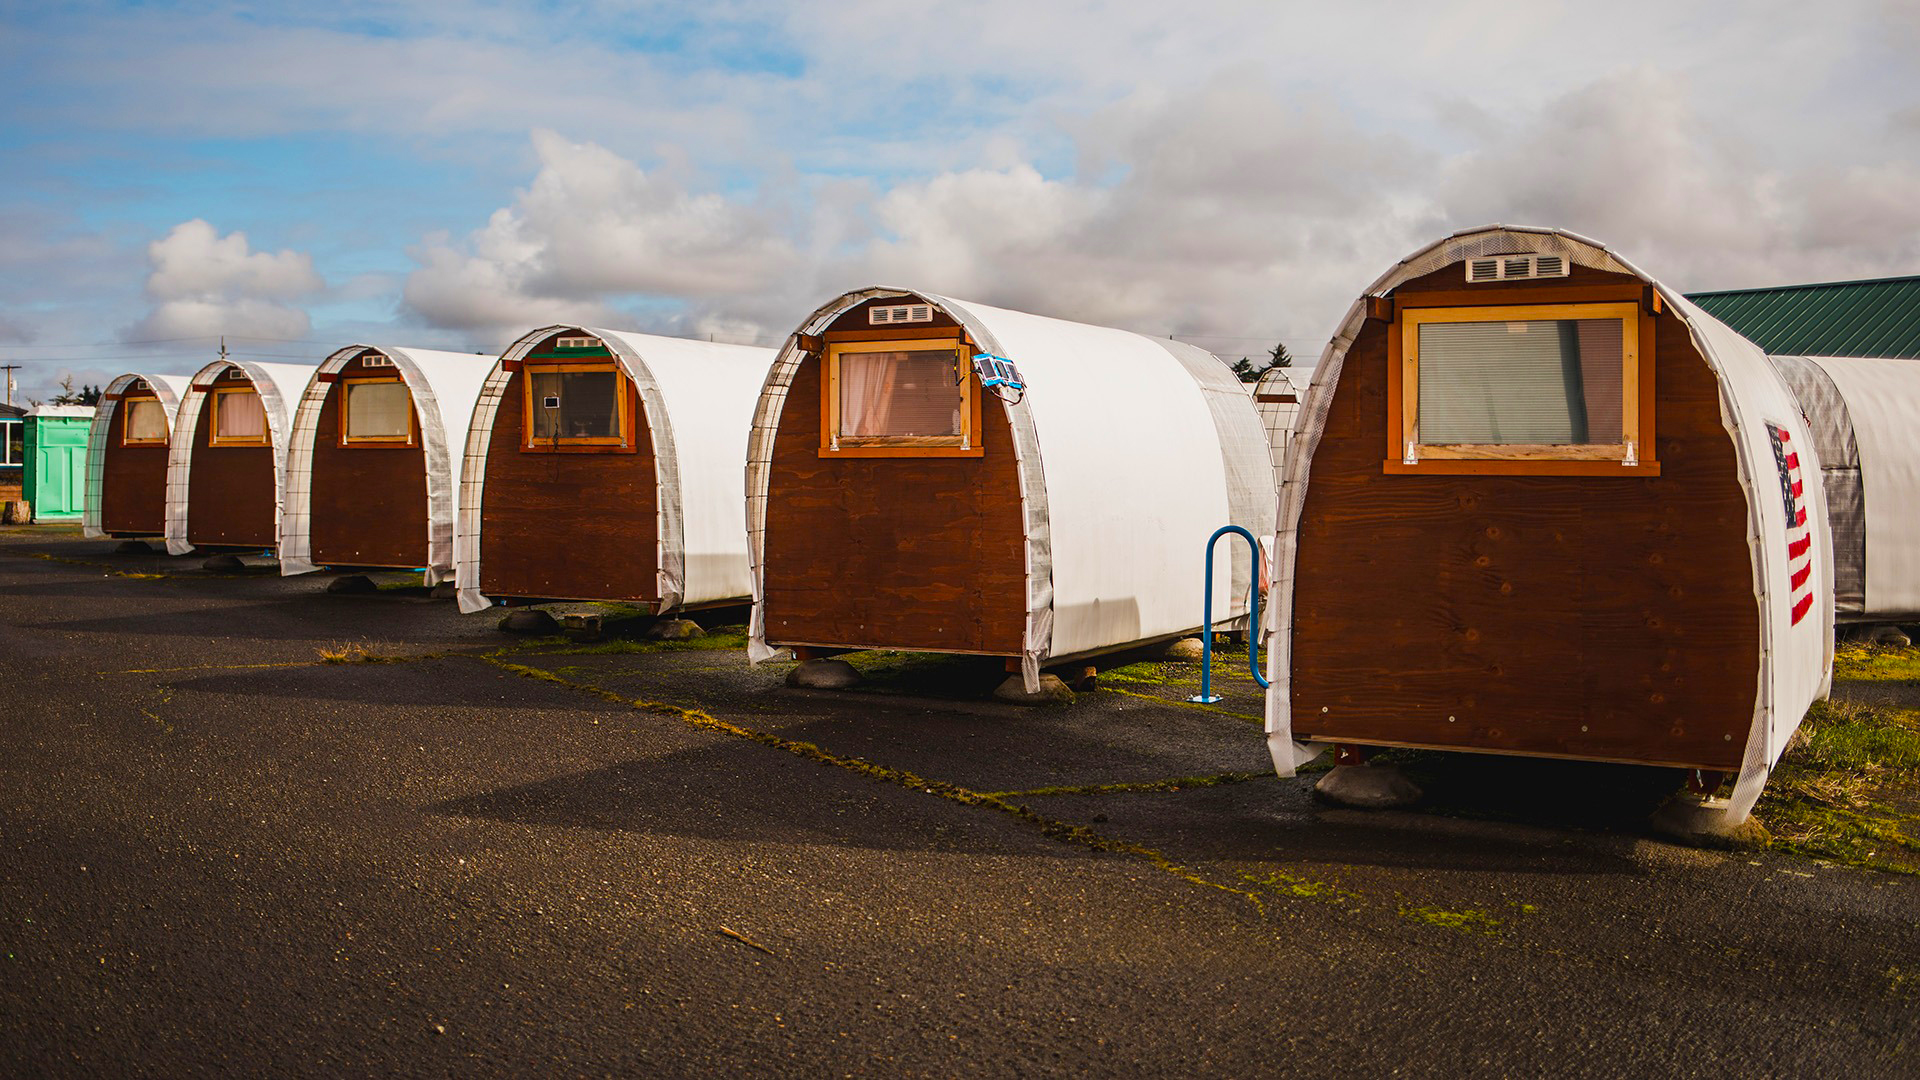 Microshelters offer longer-term solution for homeless in COVID-19 response